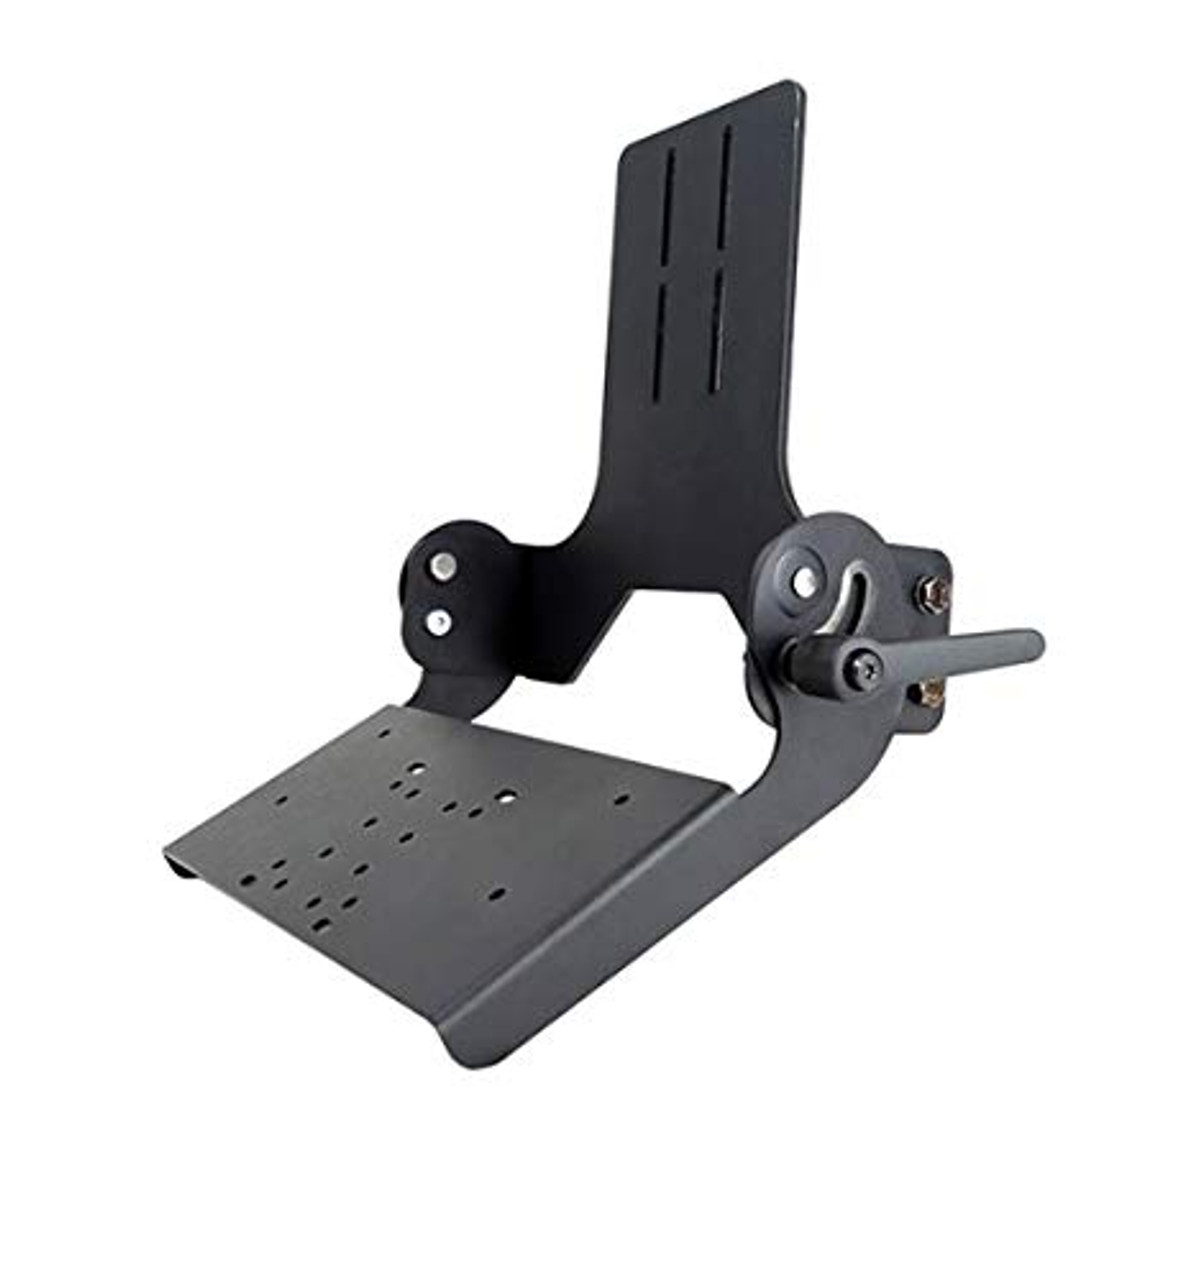 Honeywell 'VMU' Keyboard Mount (7160-1323) | 0410XDV8HJY